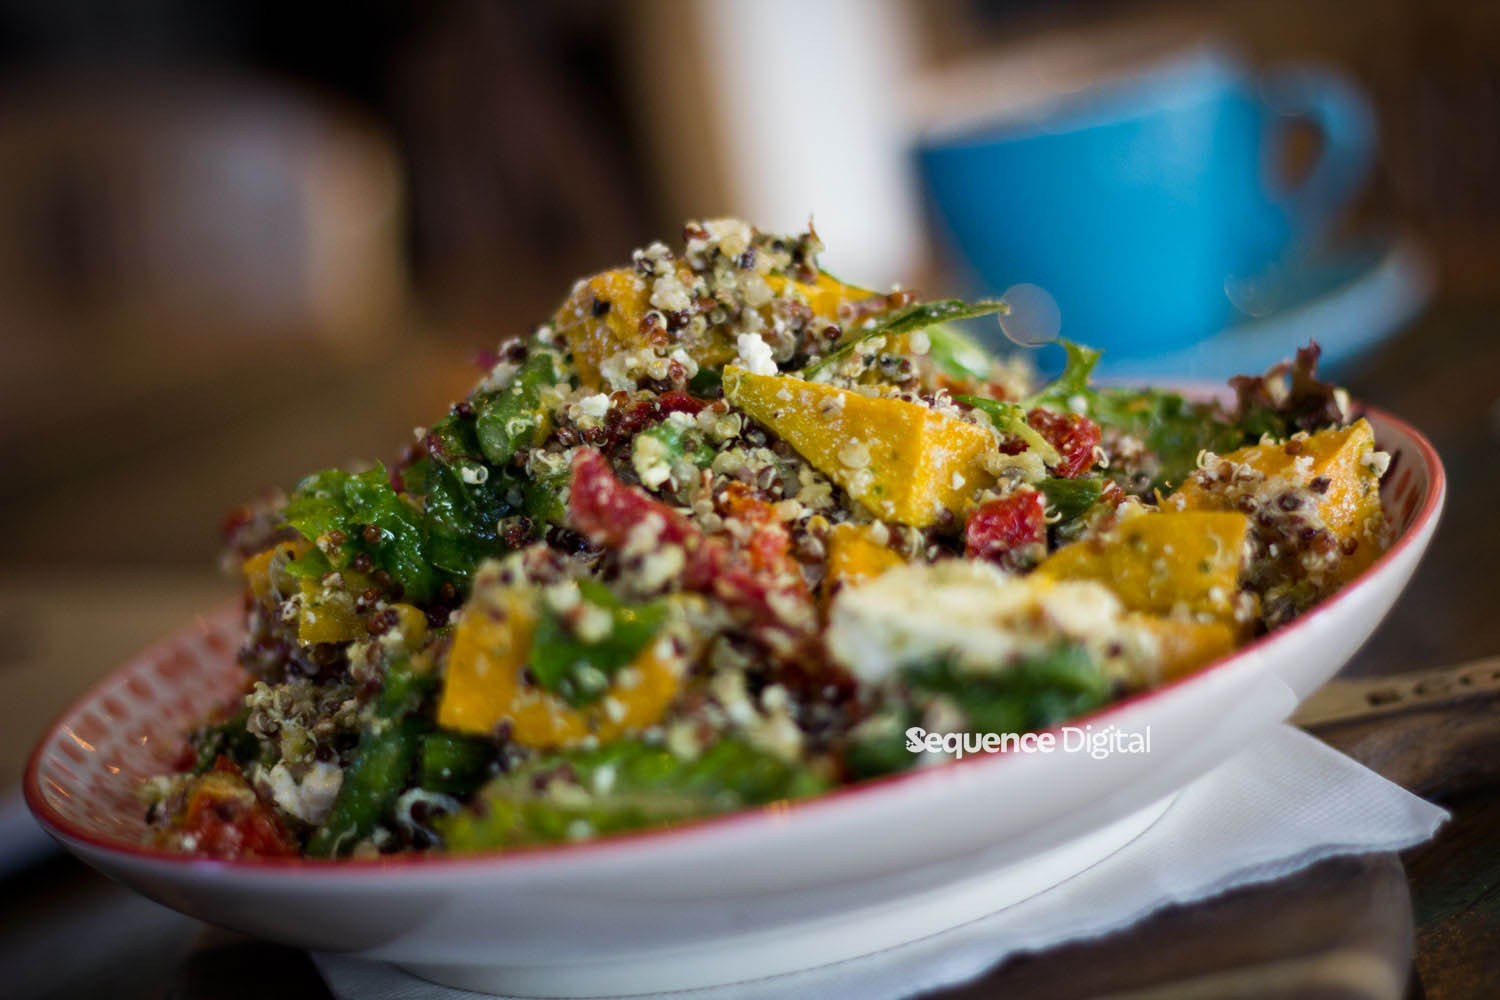 63 Degrees Cafe Geelong - Quinoa Salad